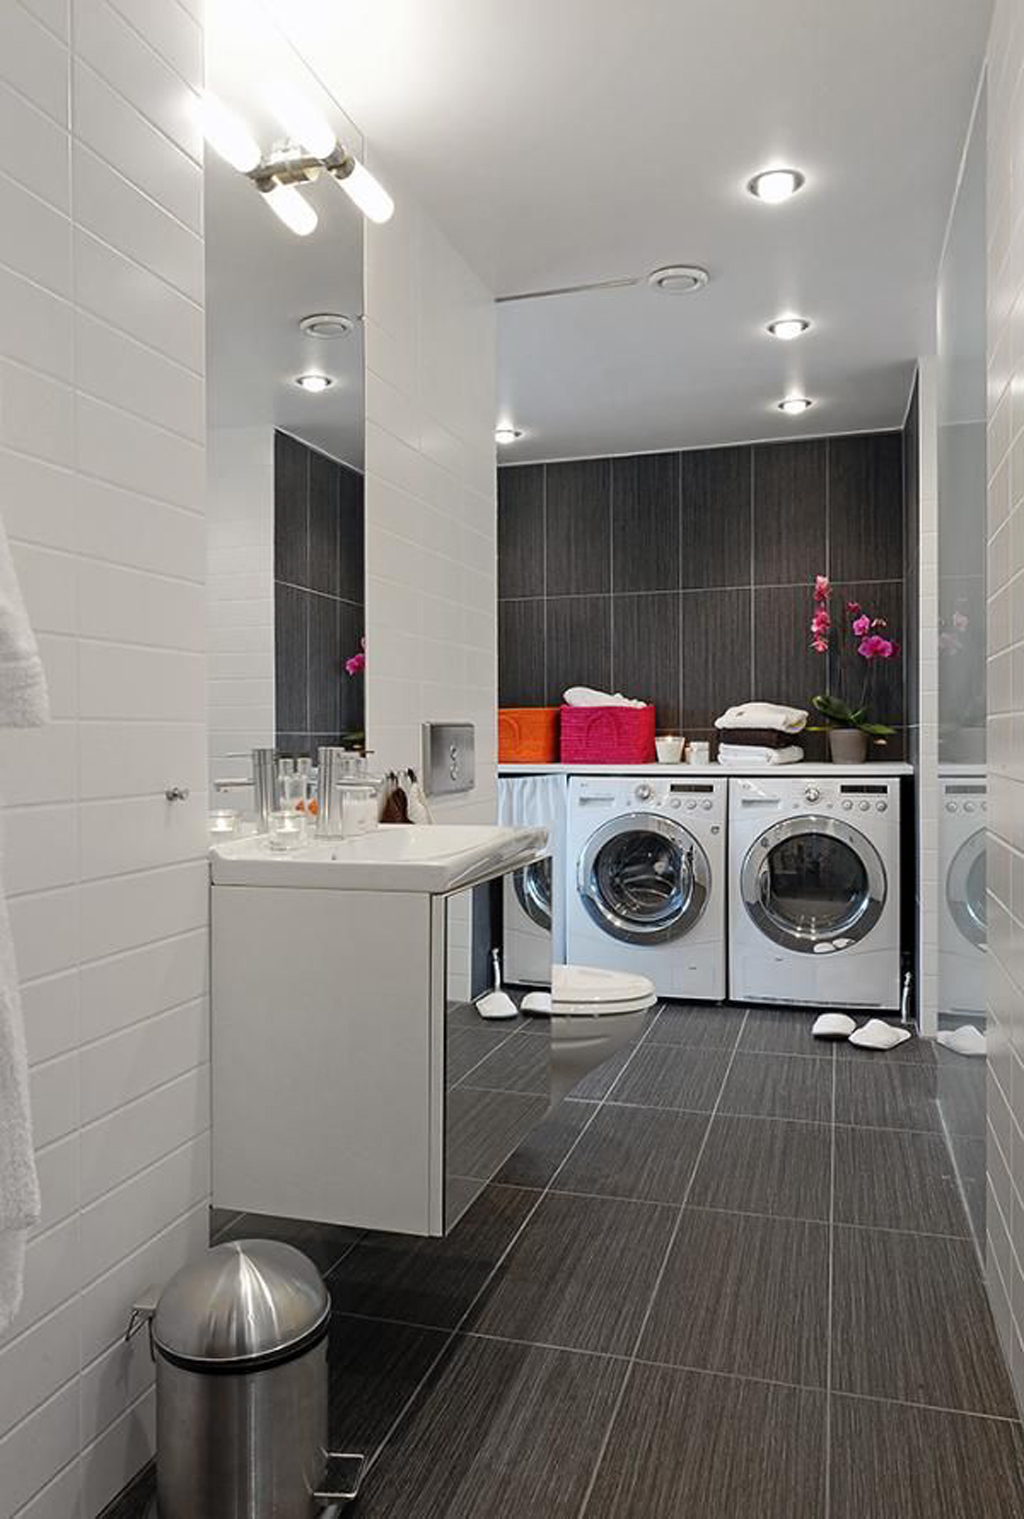 Integrated Bathroom Laundry Room Decor